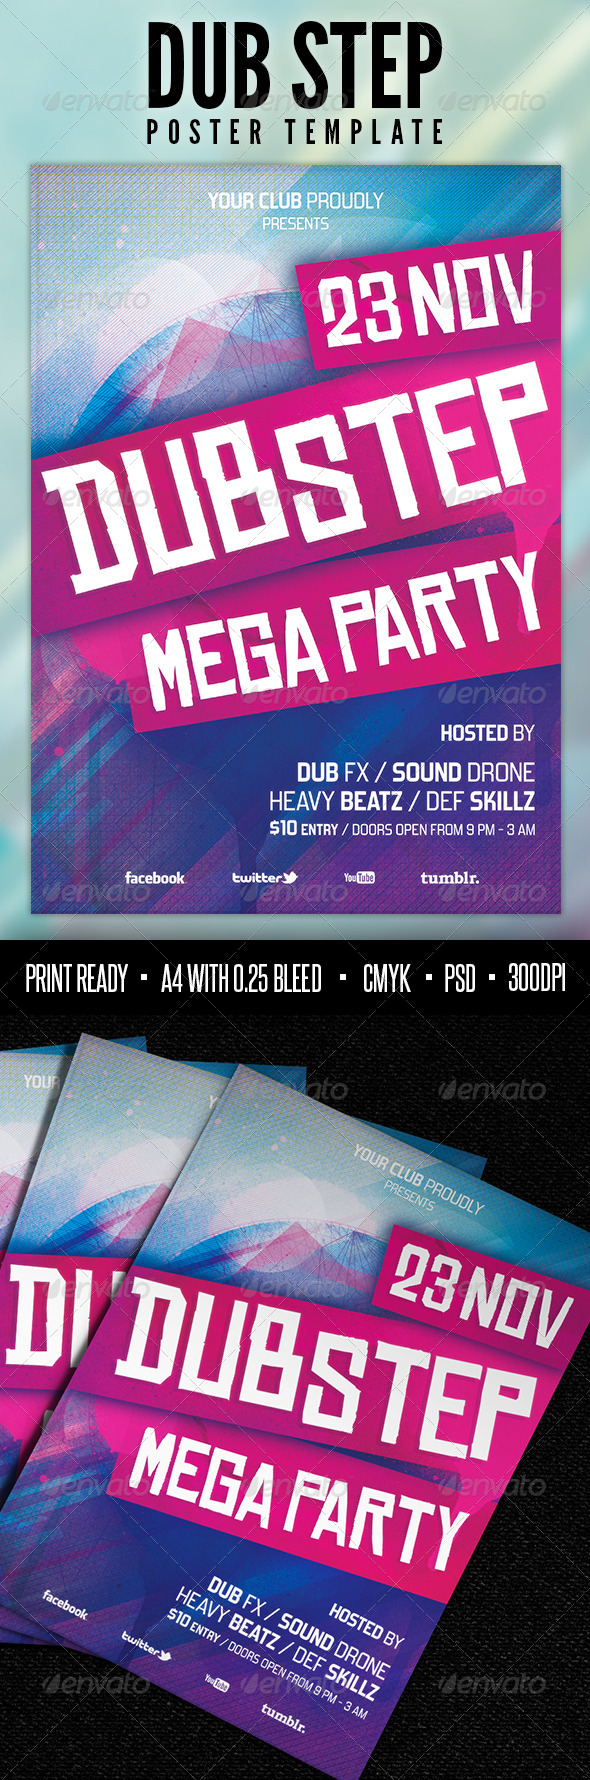 GraphicRiver Dub Step Poster Template 3960441